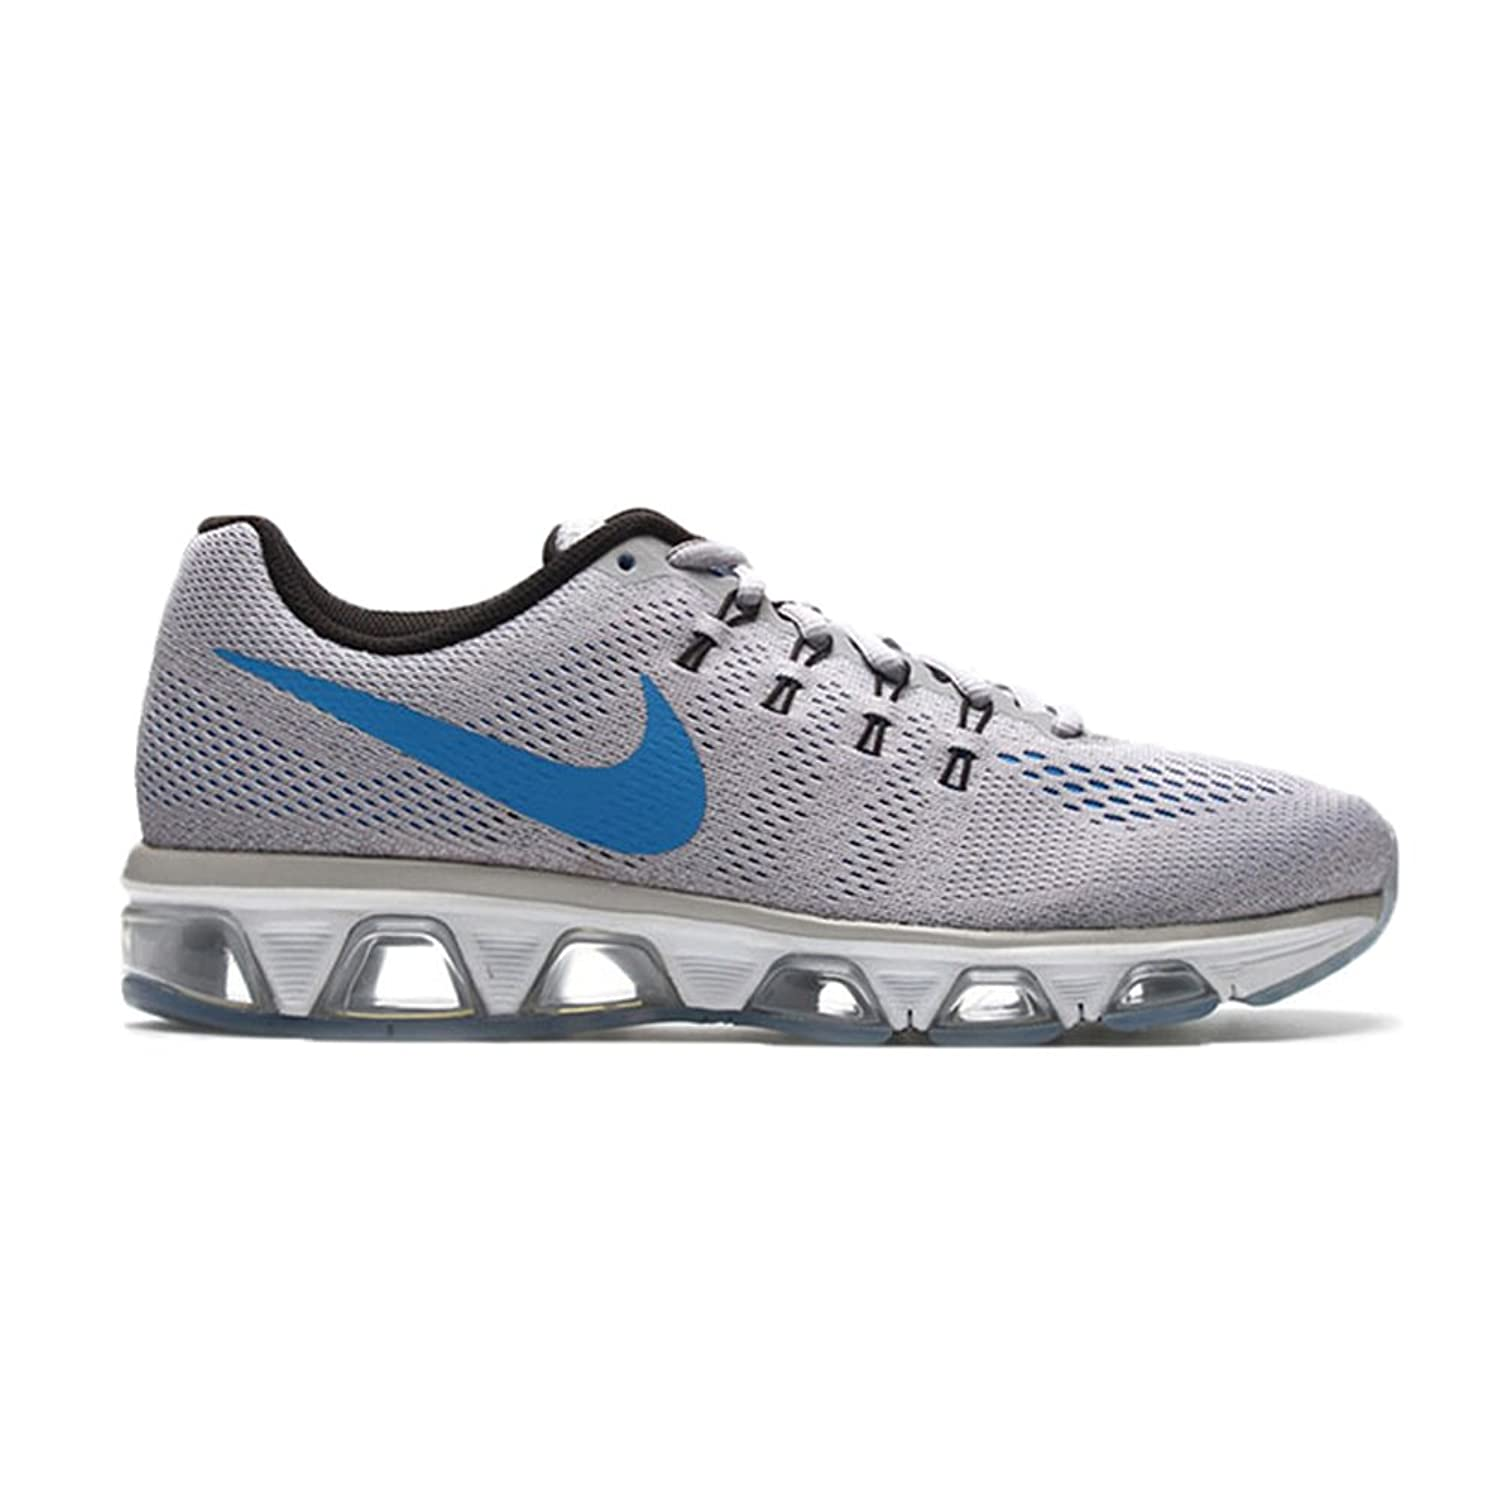 72304a2a56 True to size NIKE Air Max Tailwind 8 Mens ...